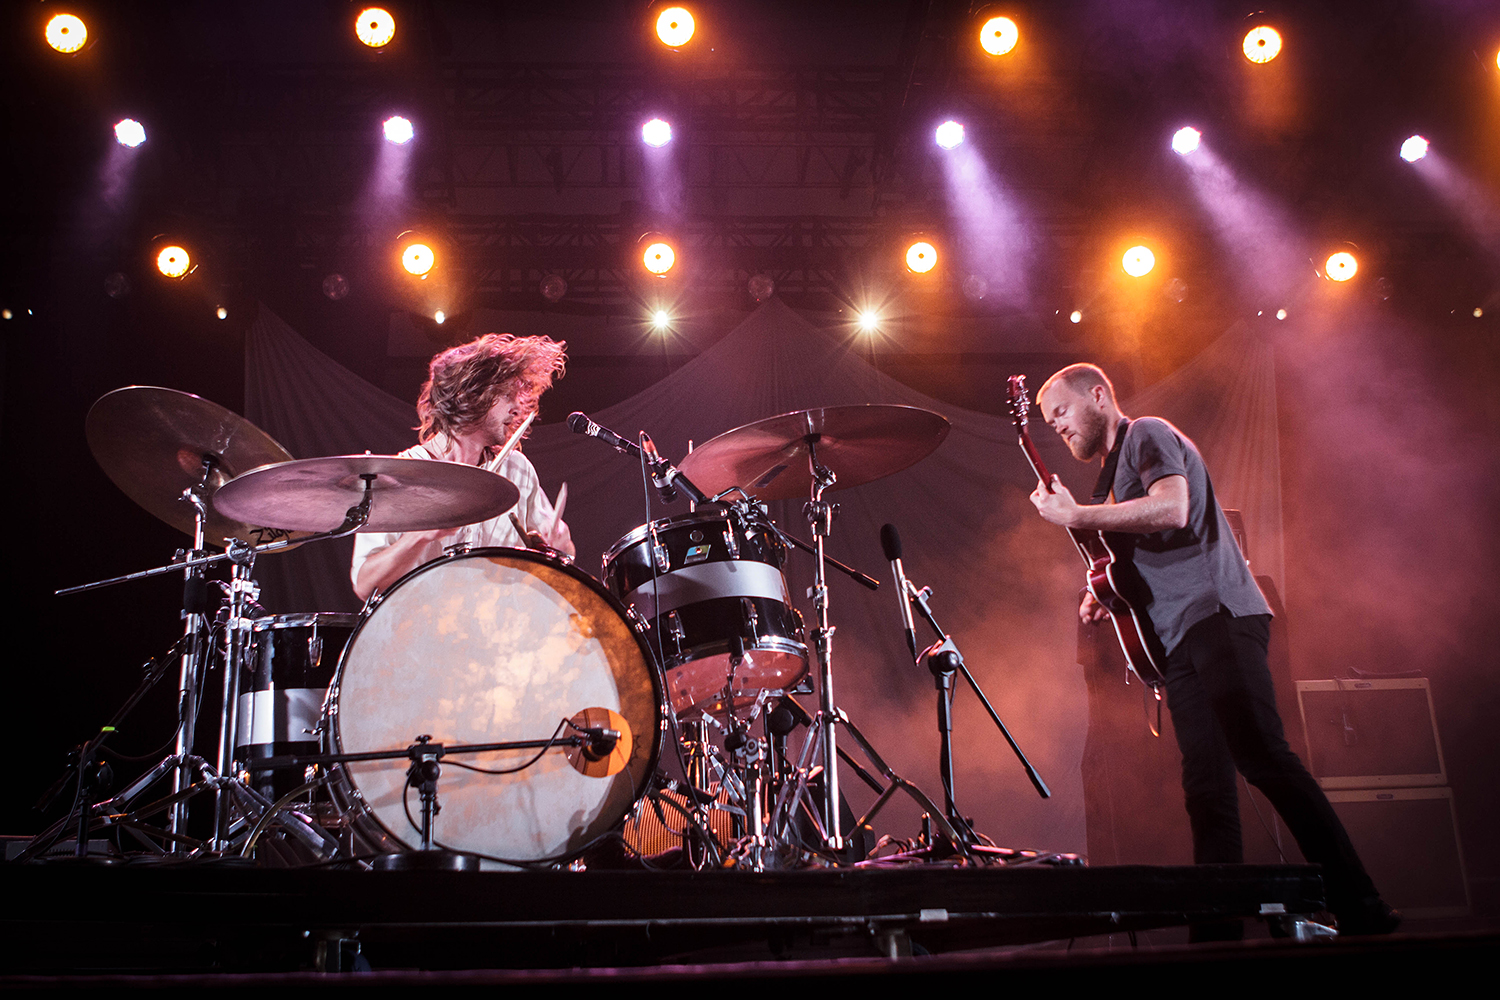 © Open'er Festival - Two Gallants perform on the first day of Open'er Festival, Gdynia, Poland_03